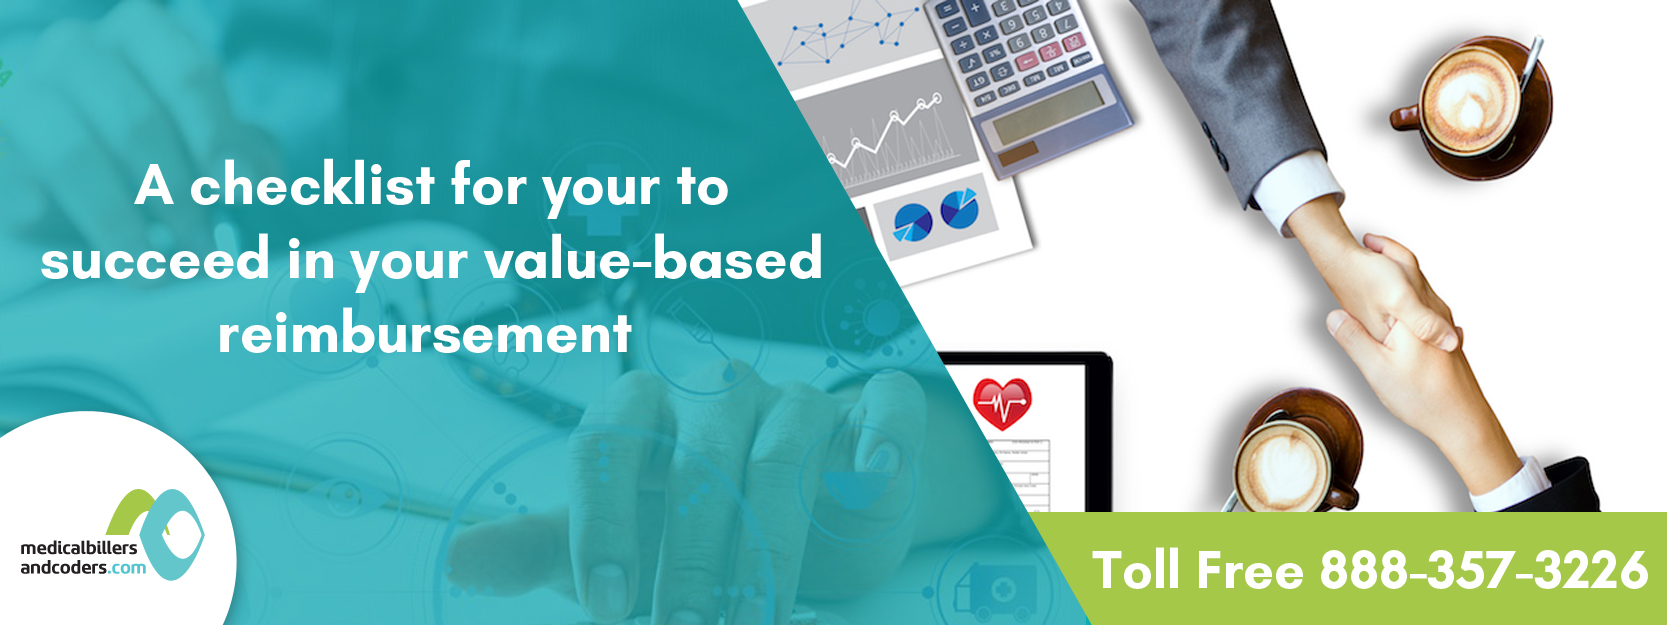 A checklist for your Practice to succeed in your value-based reimbursement